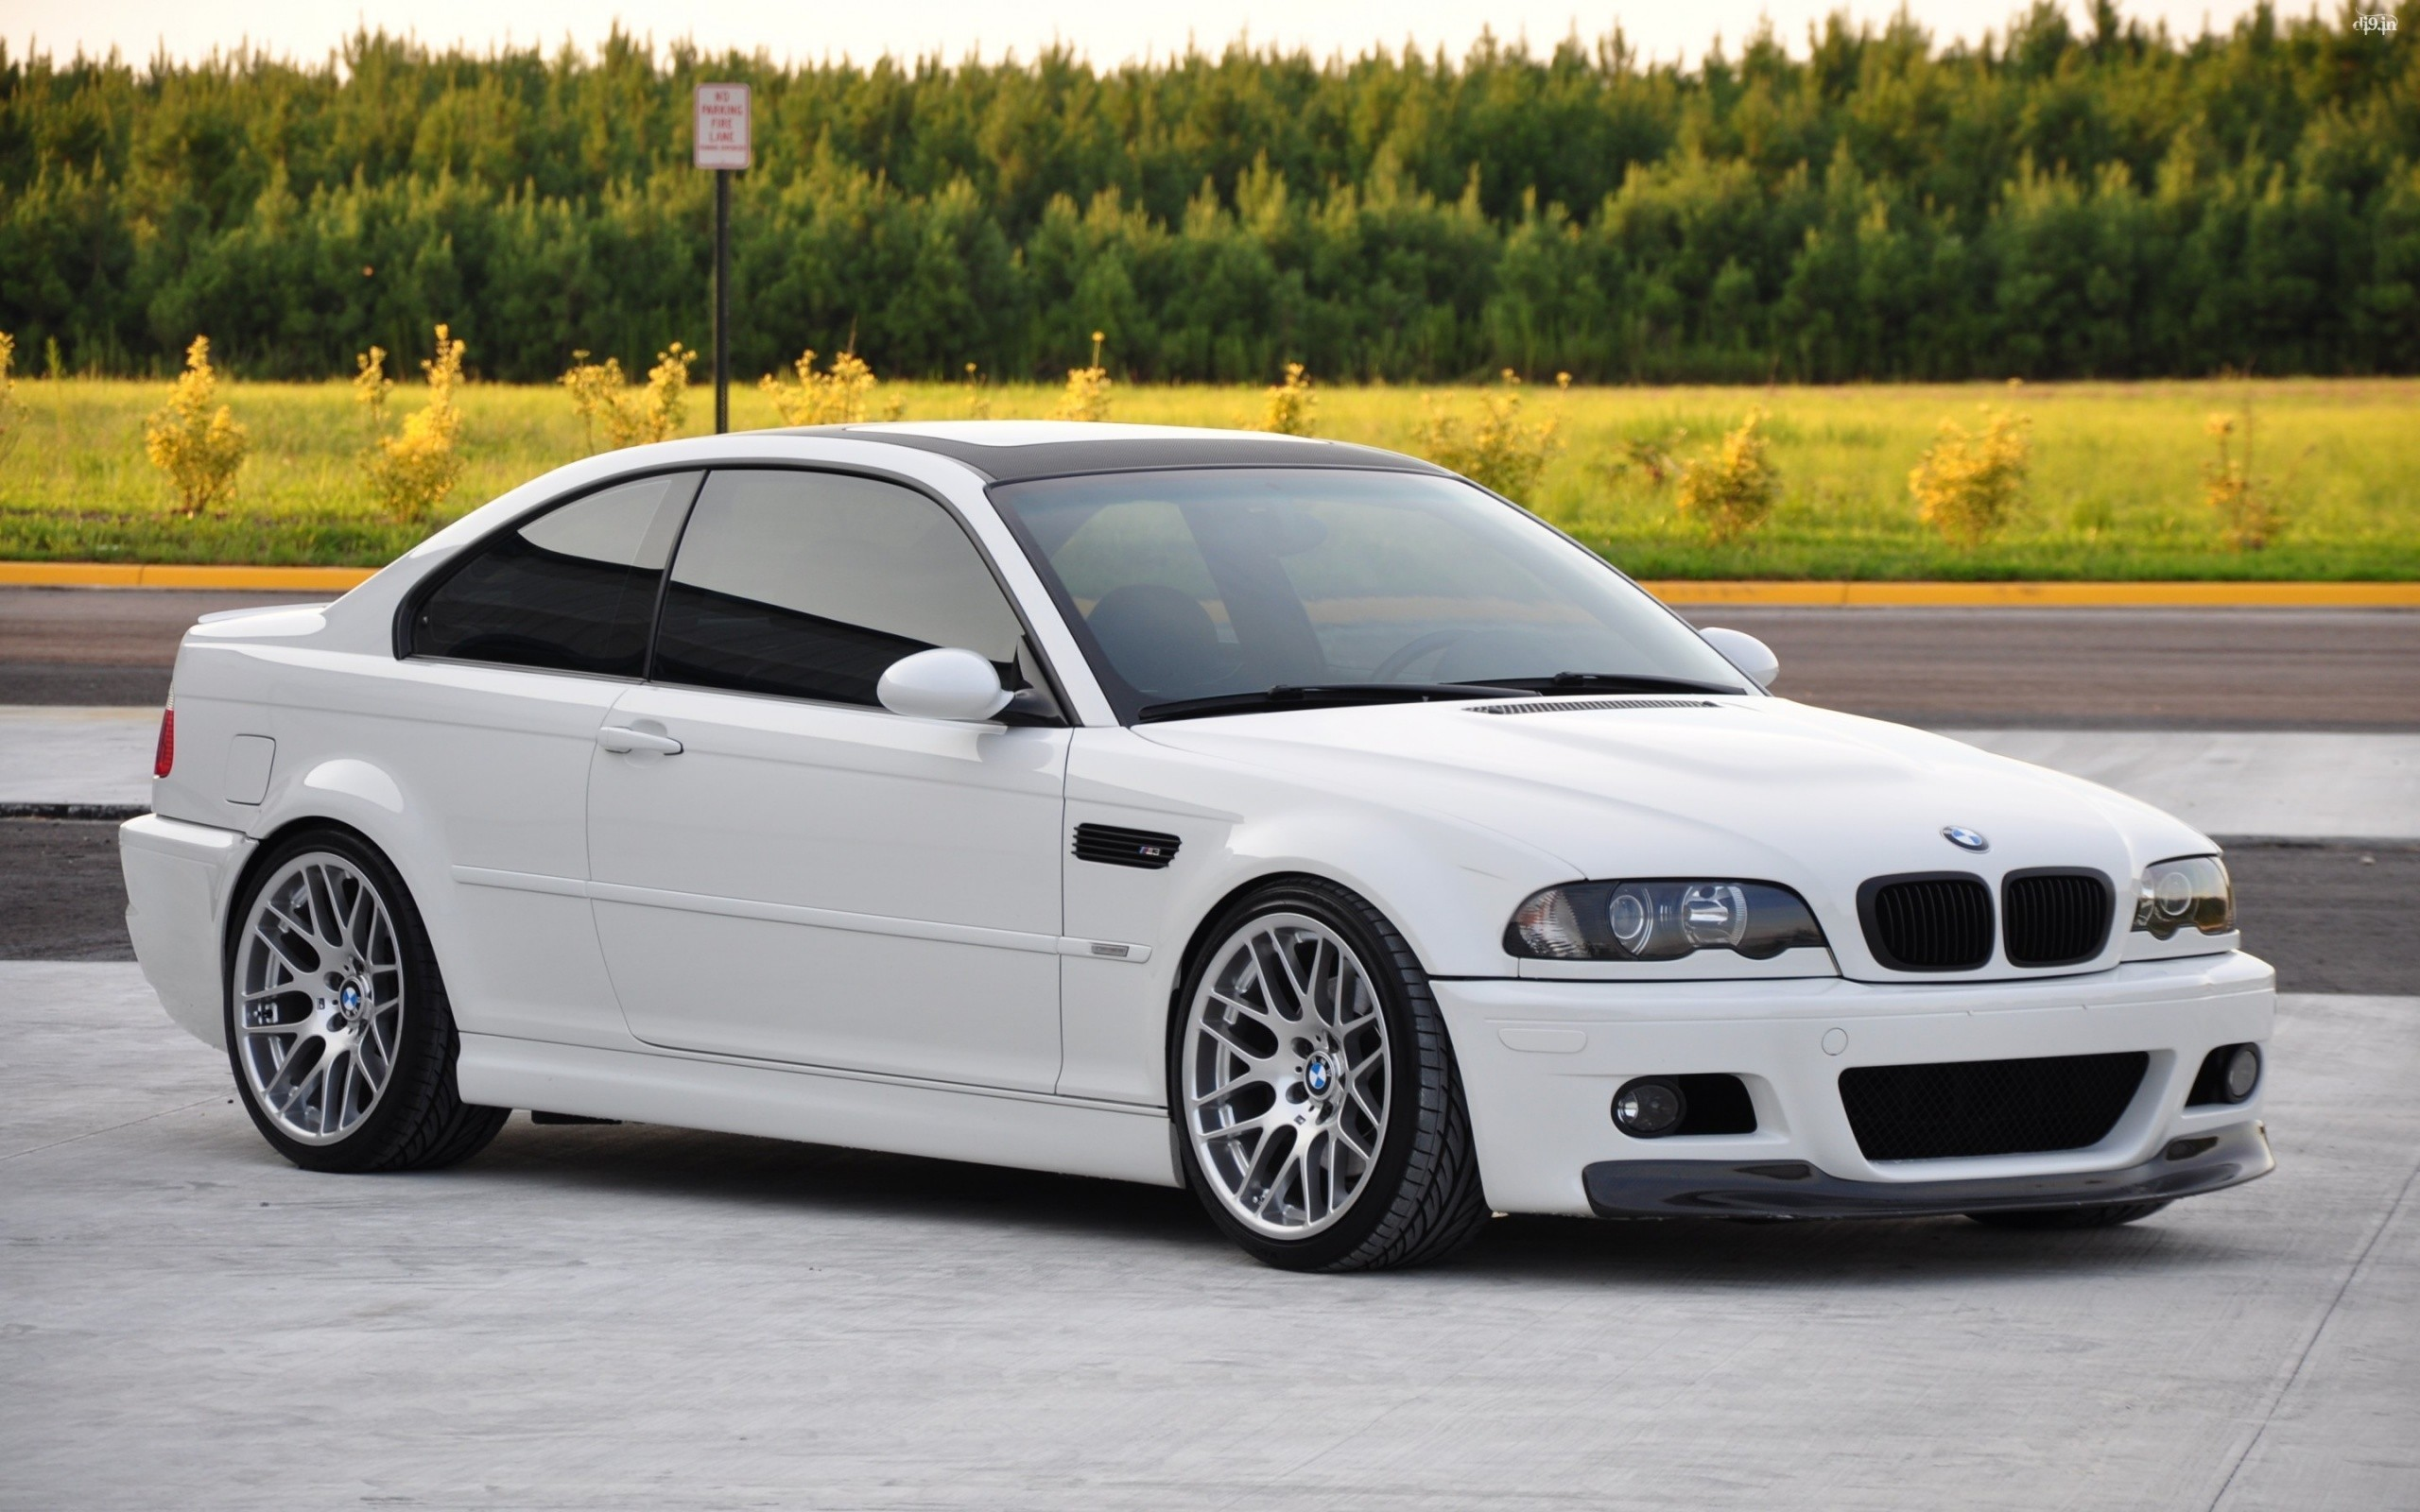 2560x1600 General  white BMW car BMW 3 Series BMW M3 E46 white cars